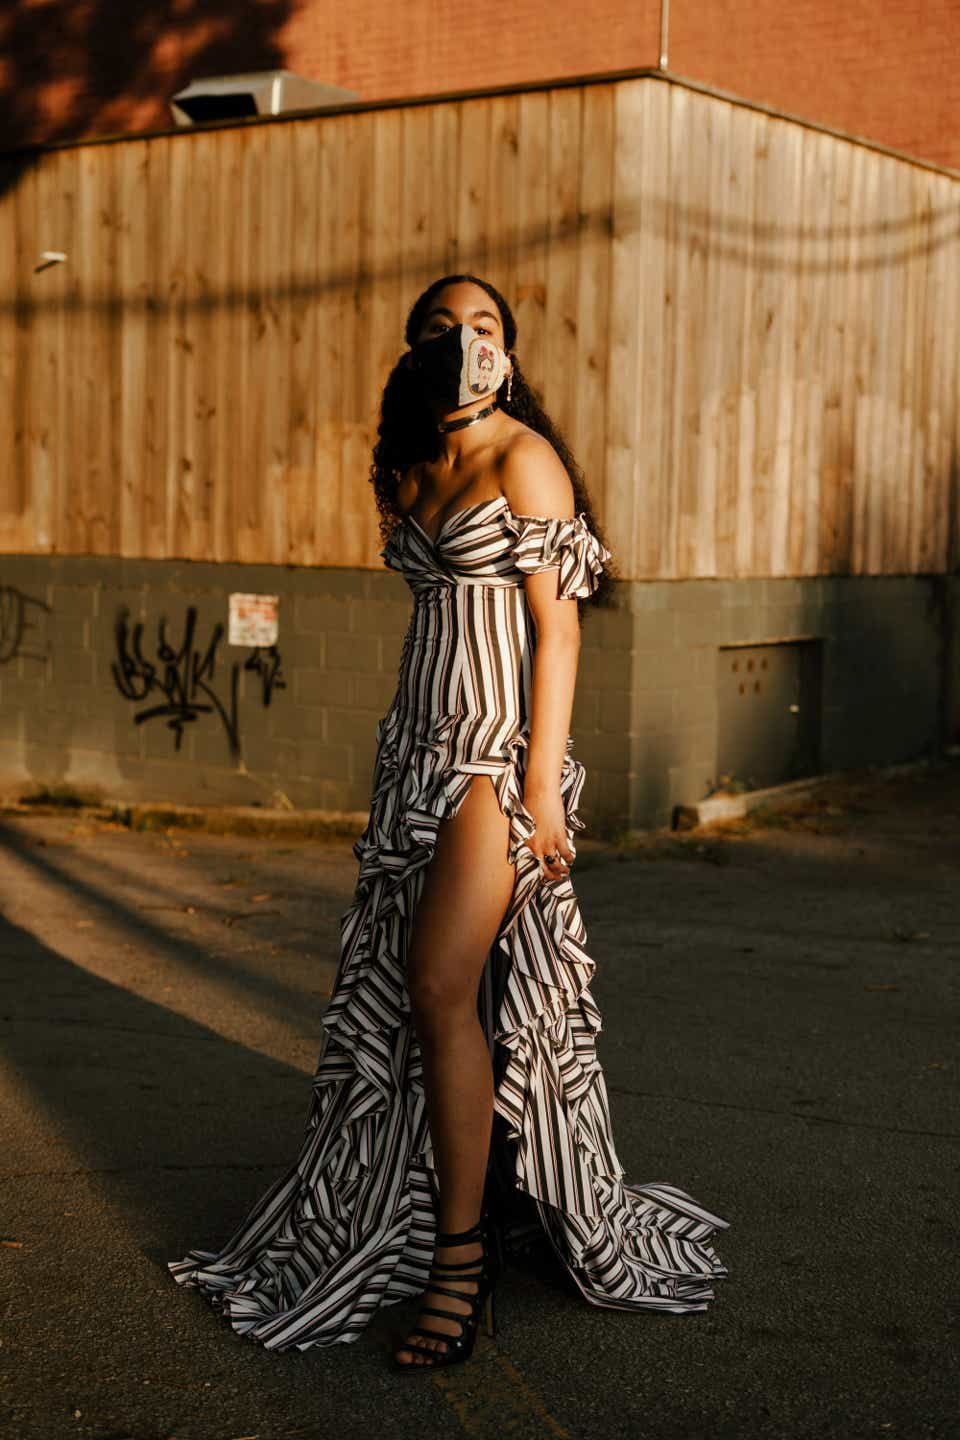 Layla is wearing an off-the-shoulder striped maxi dress with a high-slit and a ruffled train. She has on lace-up black sandals and a face mask.